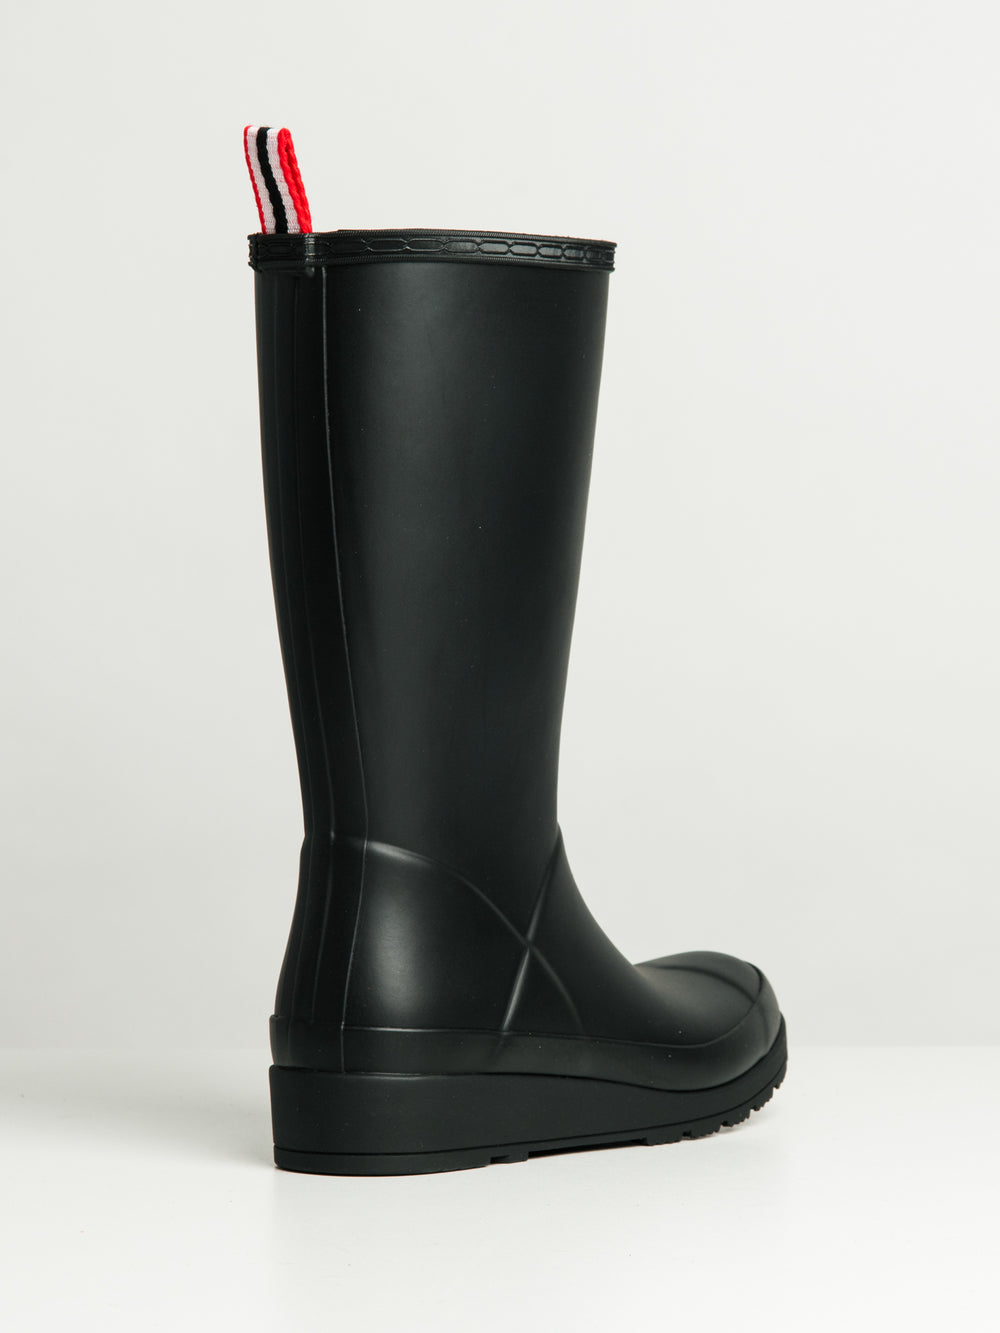 WOMENS PLAY BOOT TALL - BLACK